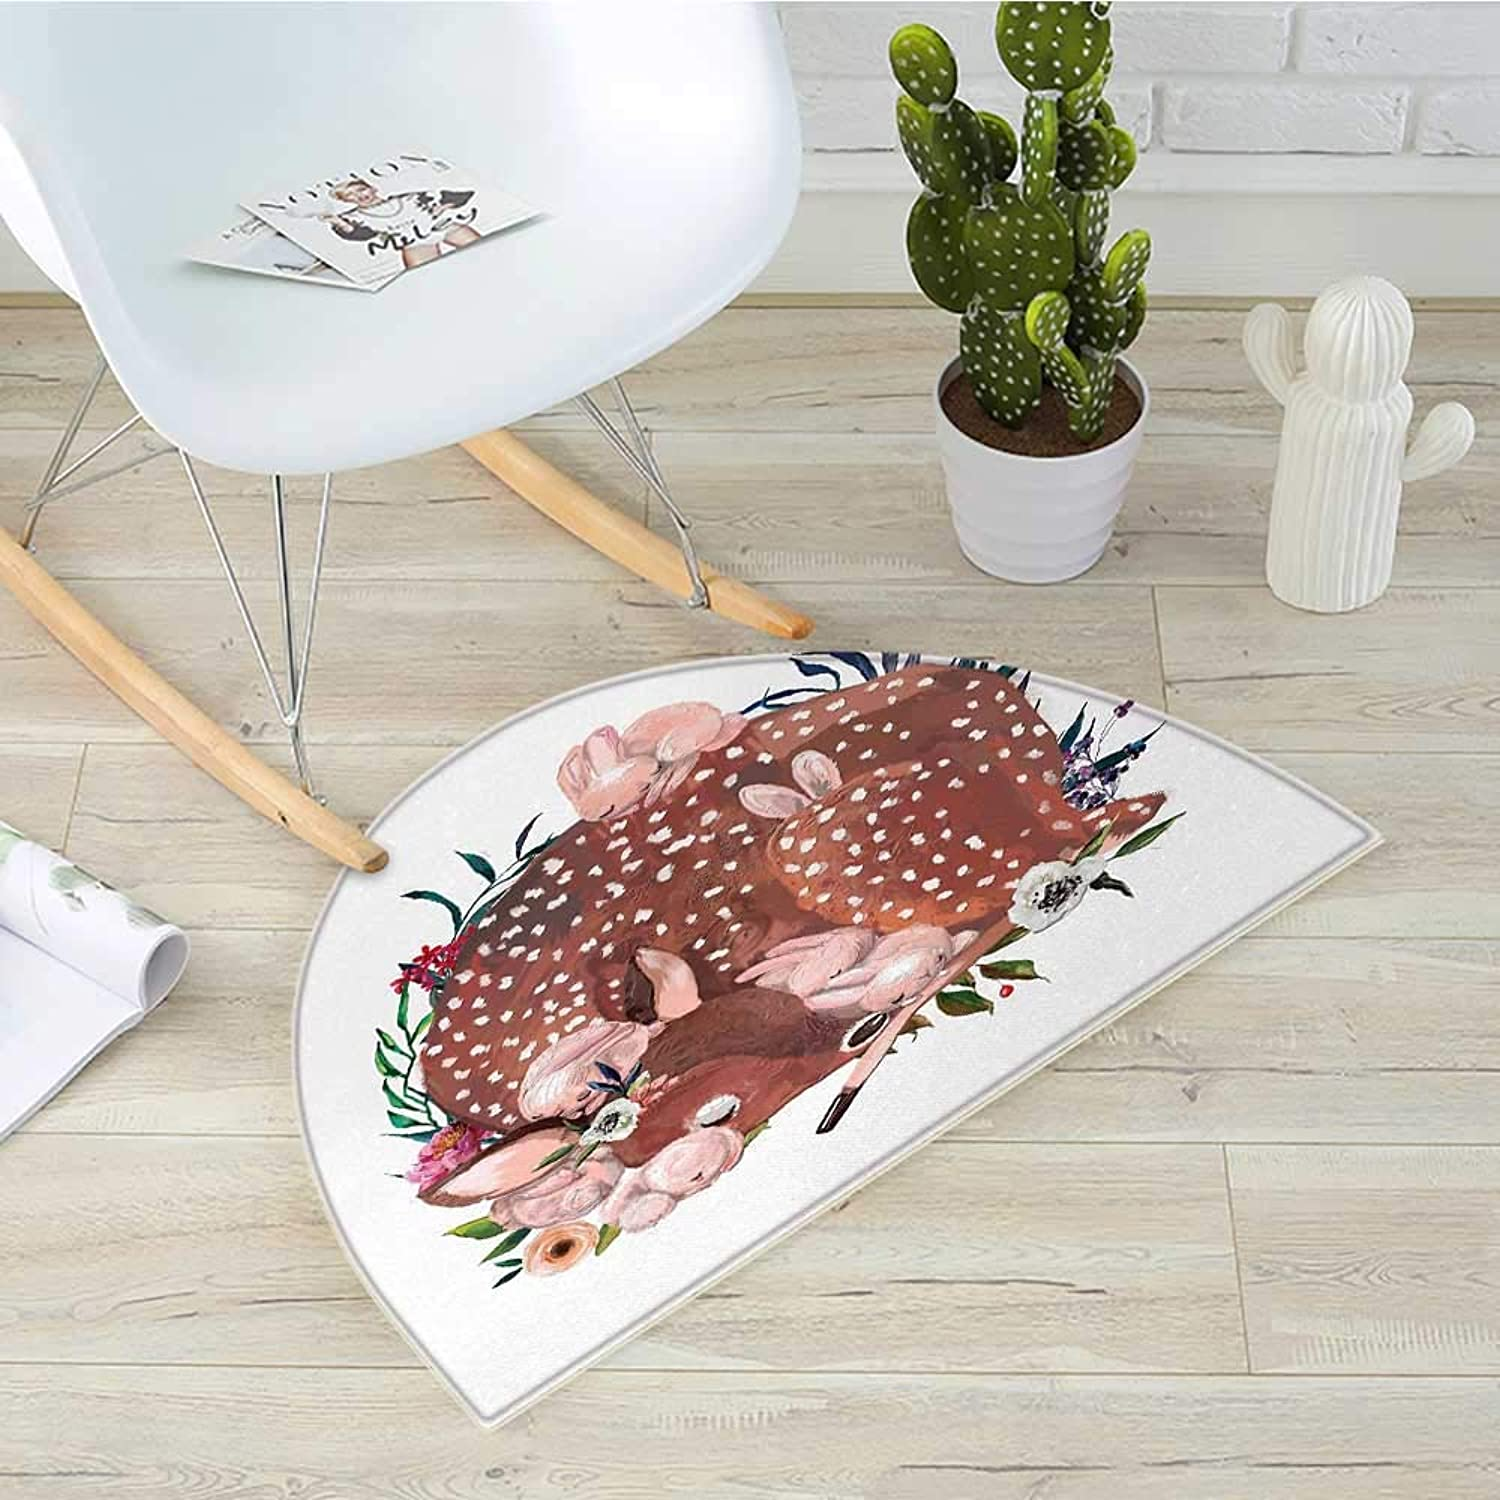 Kids Semicircle Doormat Artistic Illustration of a Deer with Hares Sleeping in The Forest Sweet Wildlife Theme Halfmoon doormats H 39.3  xD 59  Multicolor